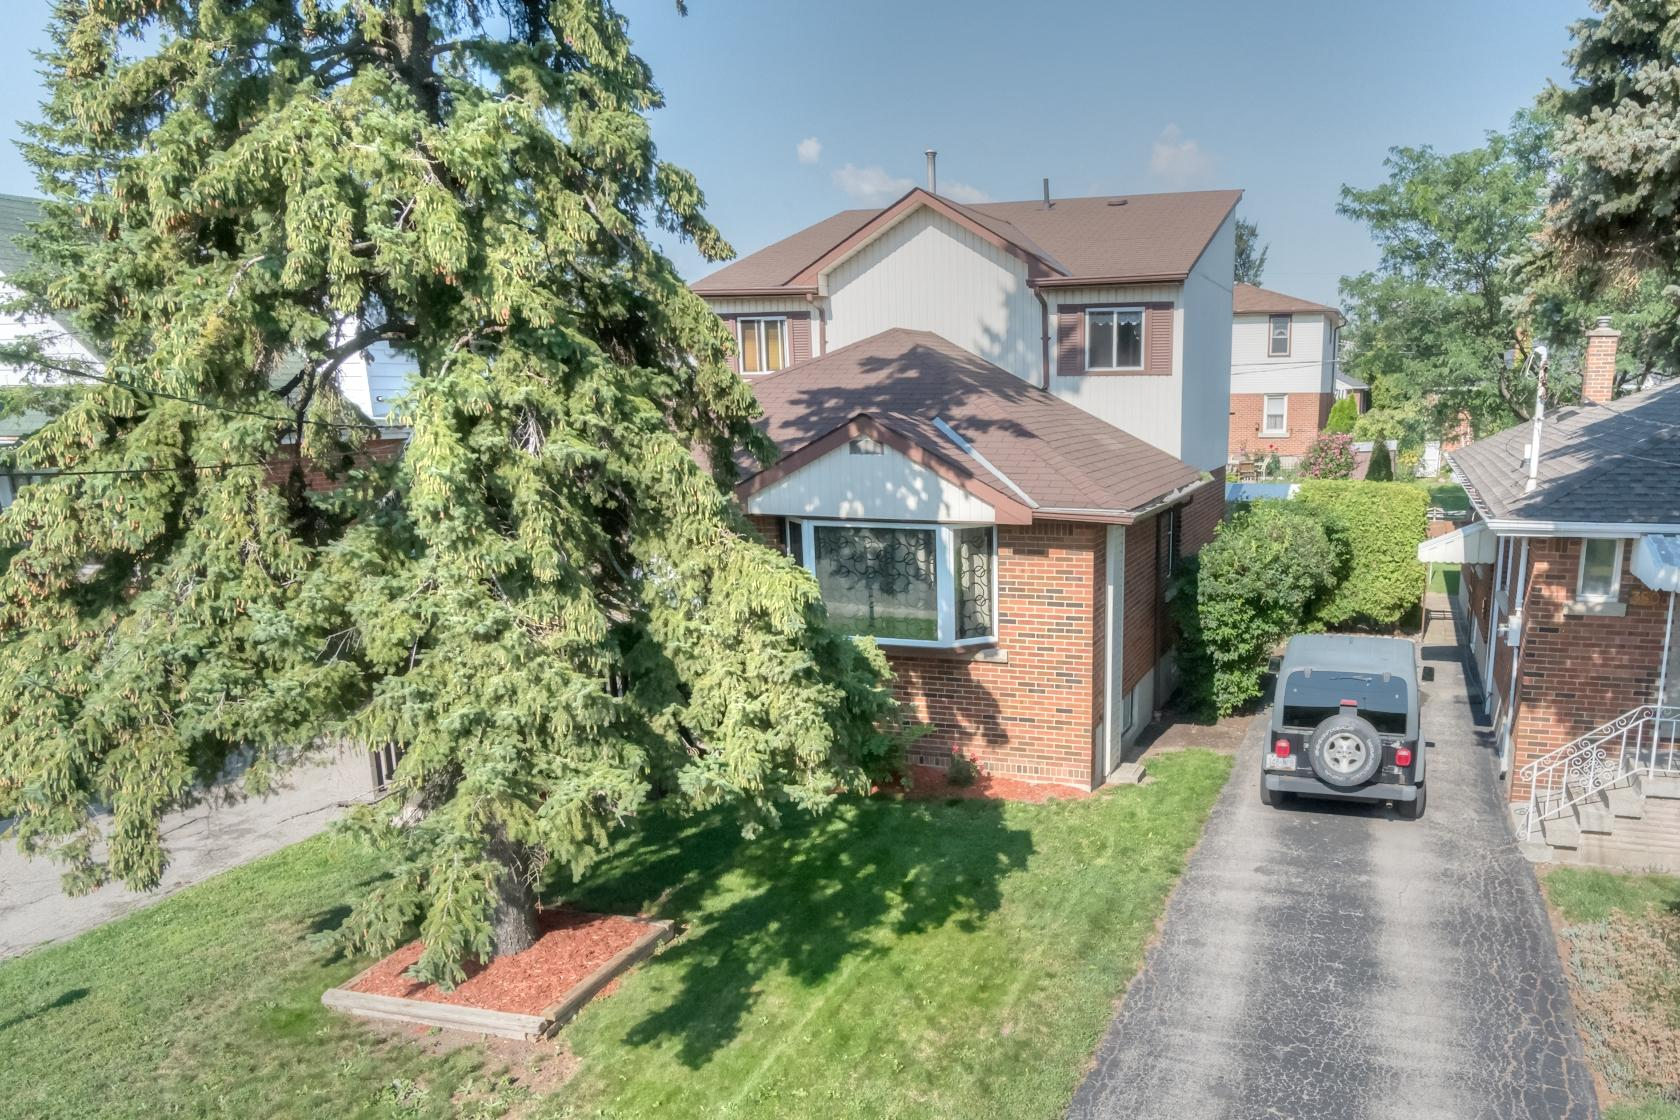 352 East 18th St $399,900